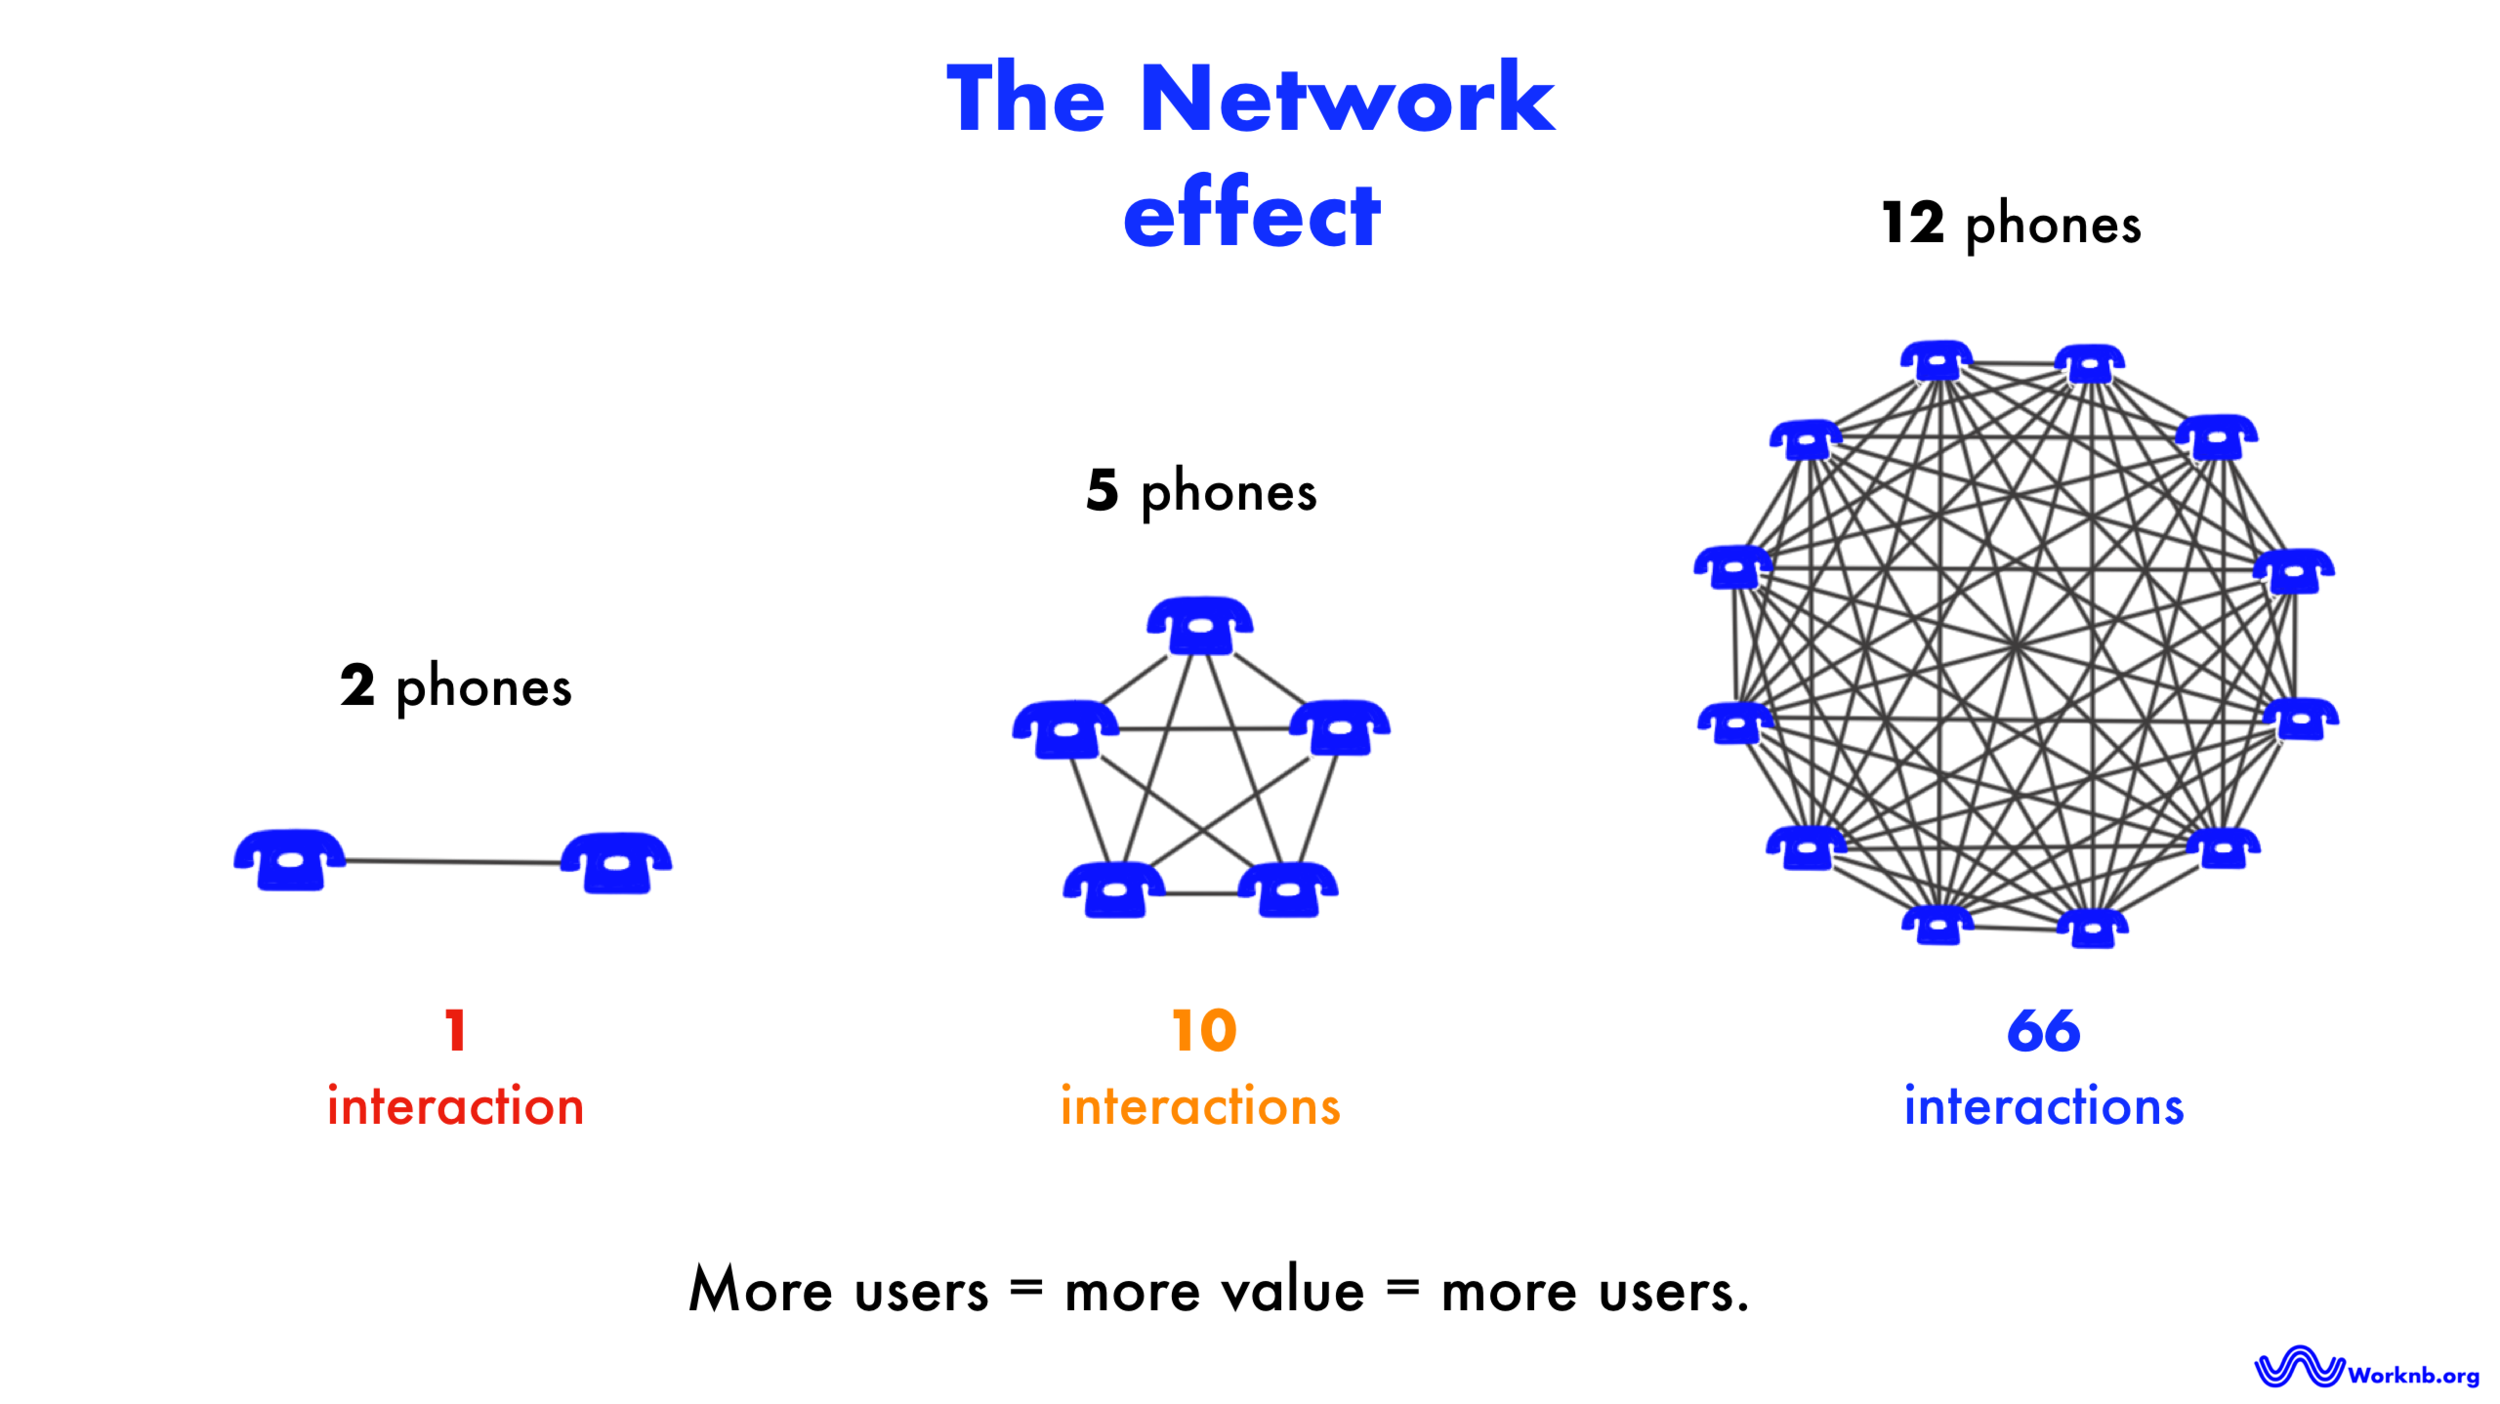 The DAO Network effect | Worknb.org